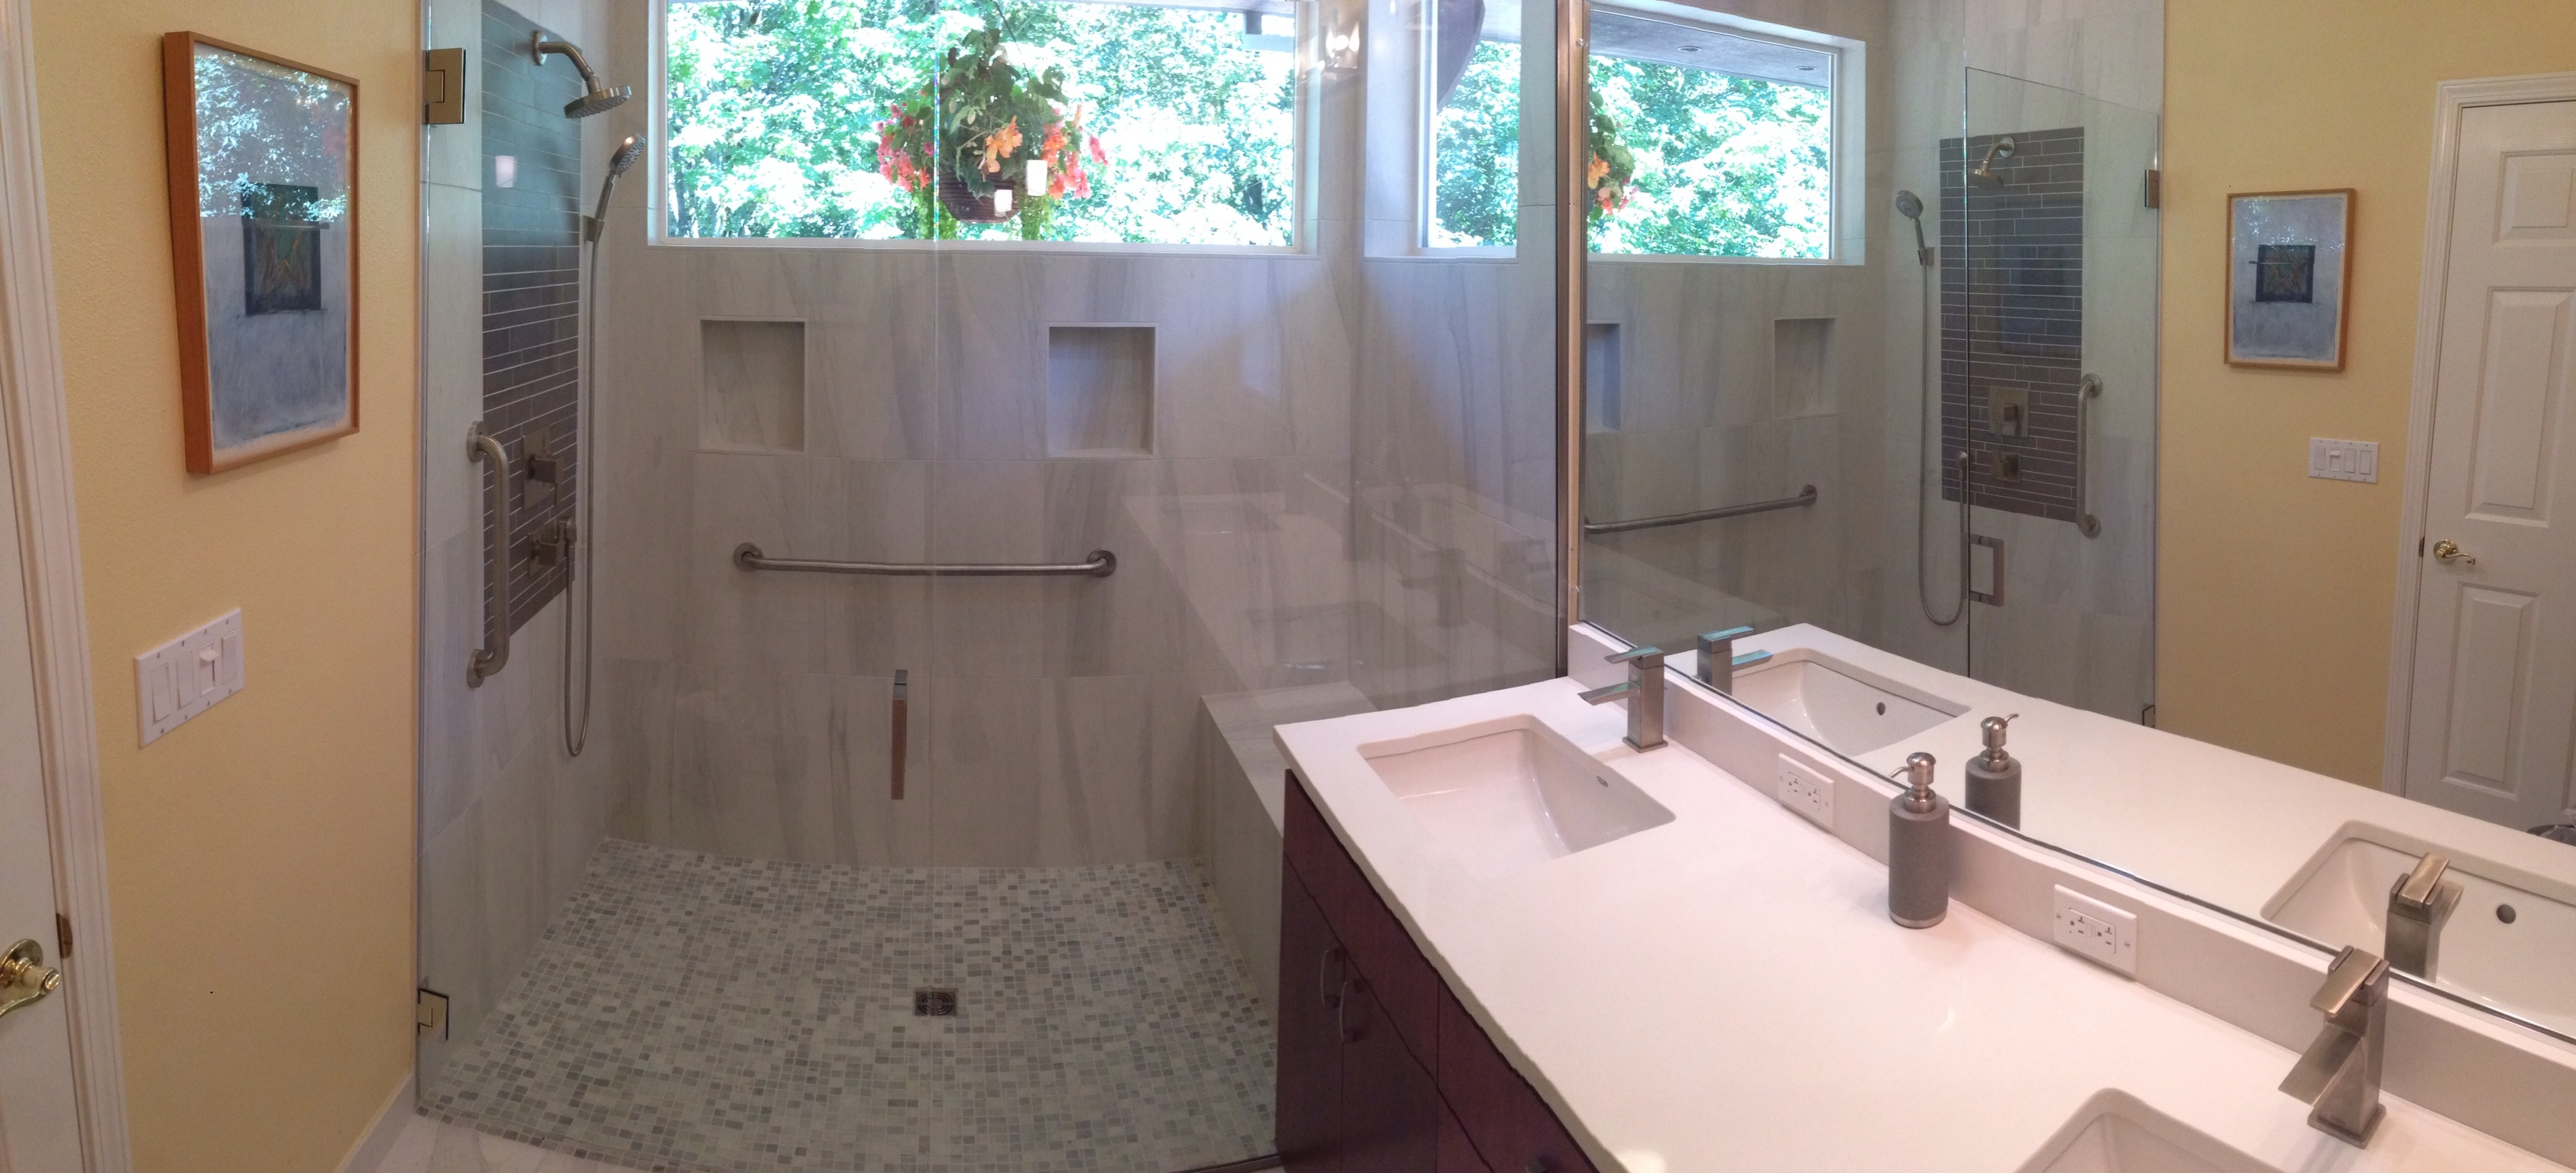 A Curbless Pan Allows Easy Access To The Shower Area. To Achieve This, A